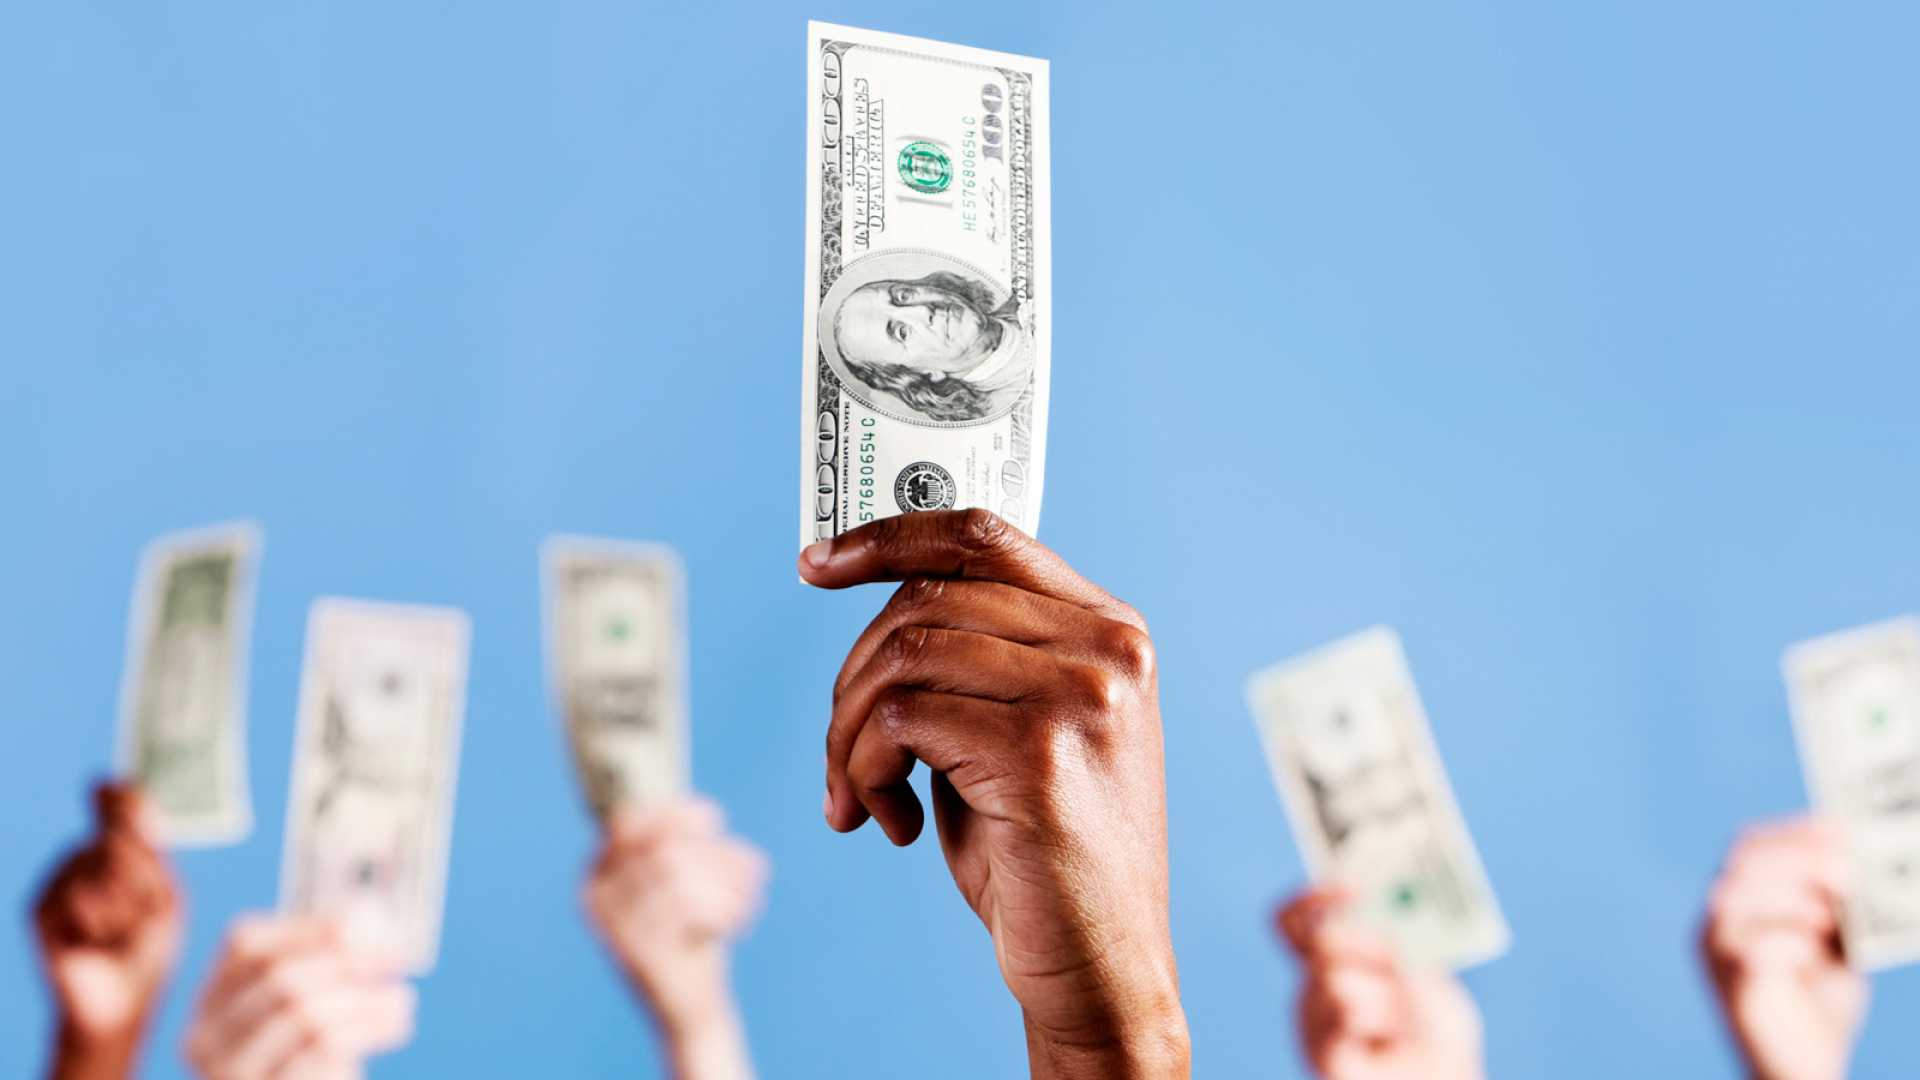 5 Tips for Running a Successful Crowdfunding Campaign